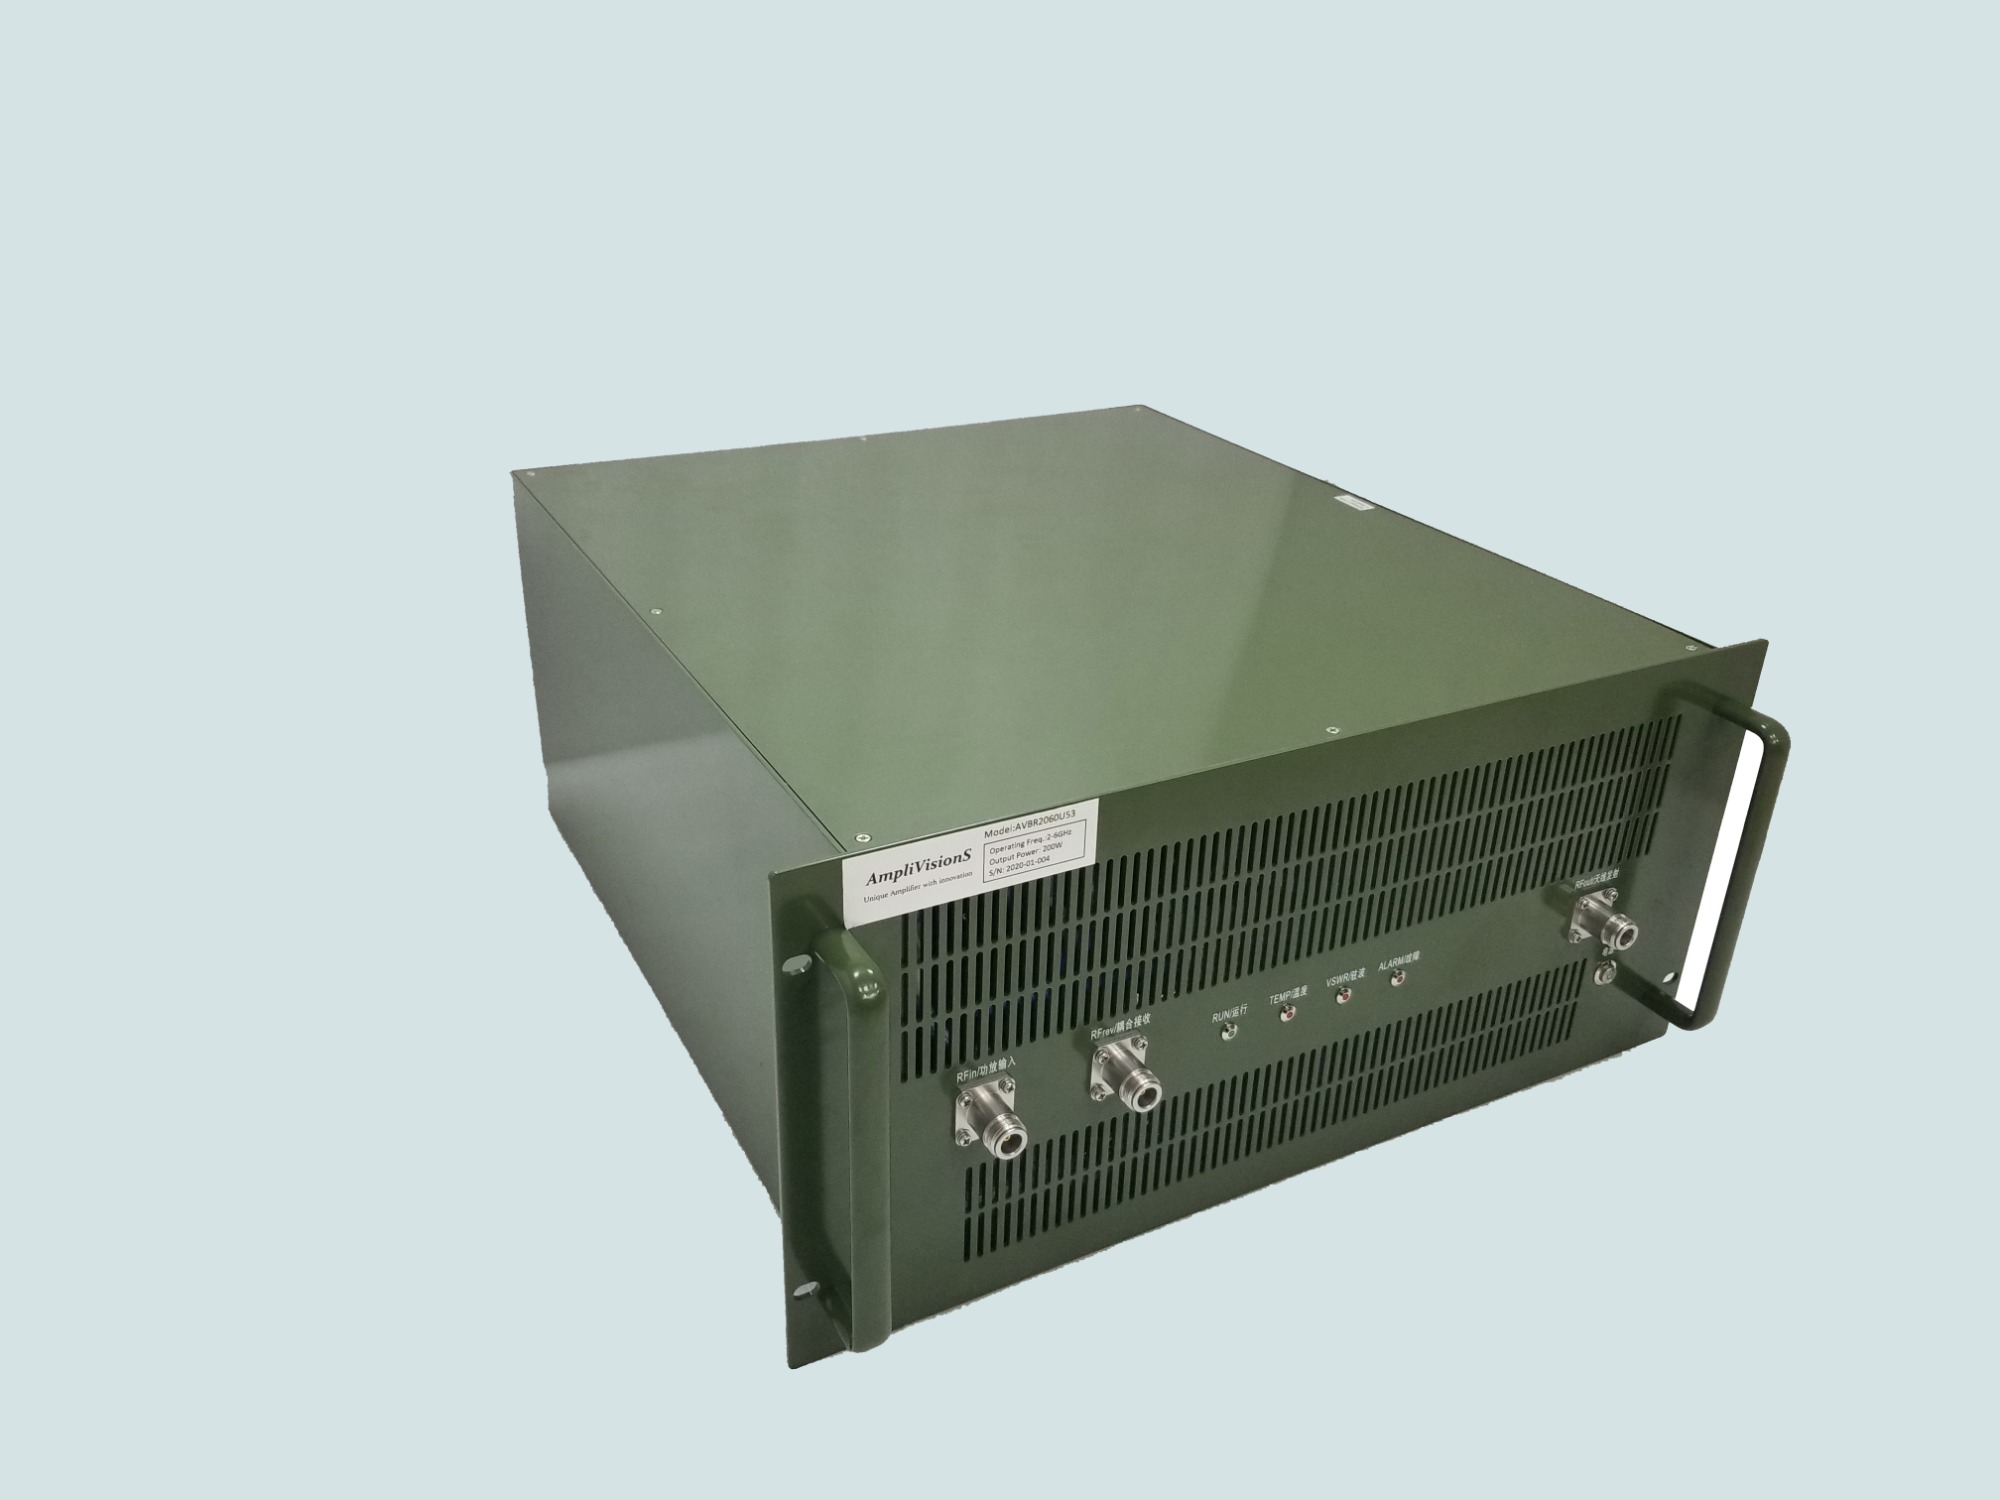 AmpliVisionS successfully delivered 10 sets of Rack-mount Power amplifier Subsystem- -AVBR2060U53 to customer.